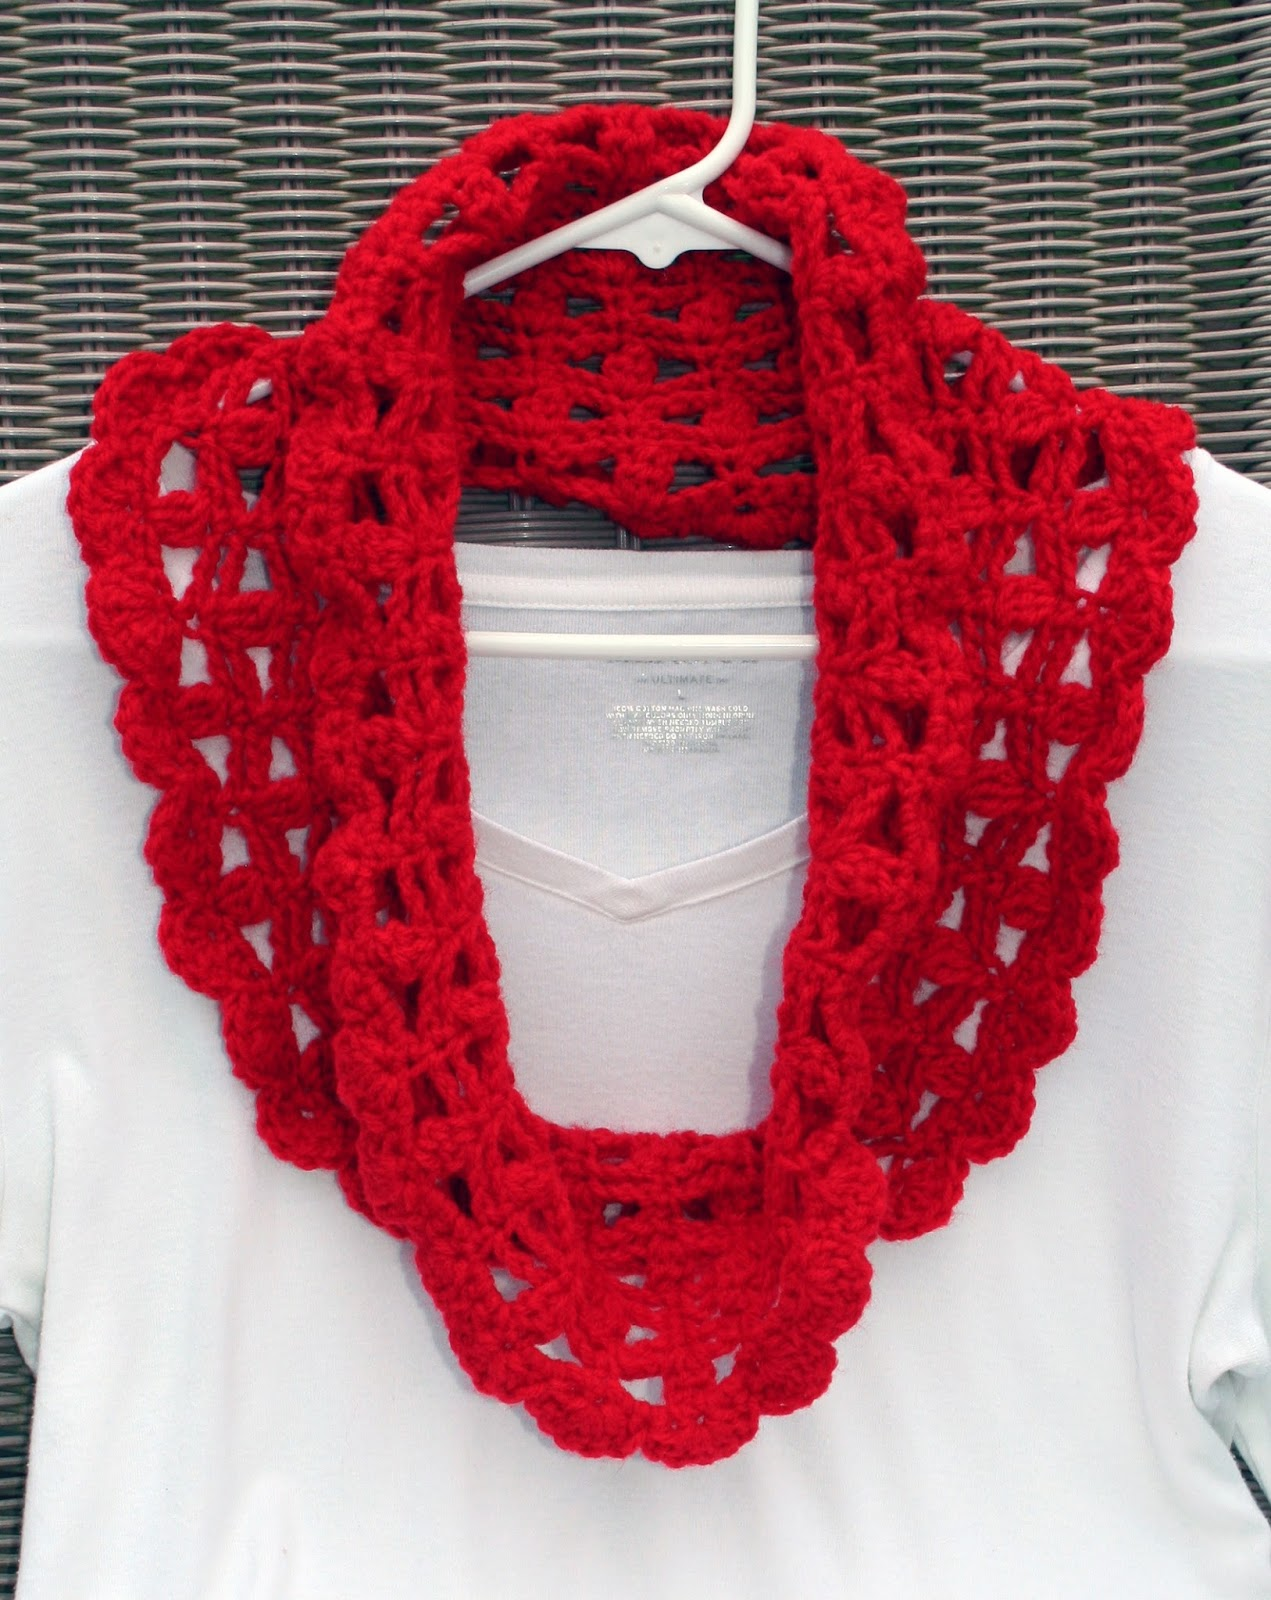 Free Crochet Patterns For Lightweight Scarves : Tampa Bay Crochet: Free Crochet Pattern: Lacy Crimson Cowl ...